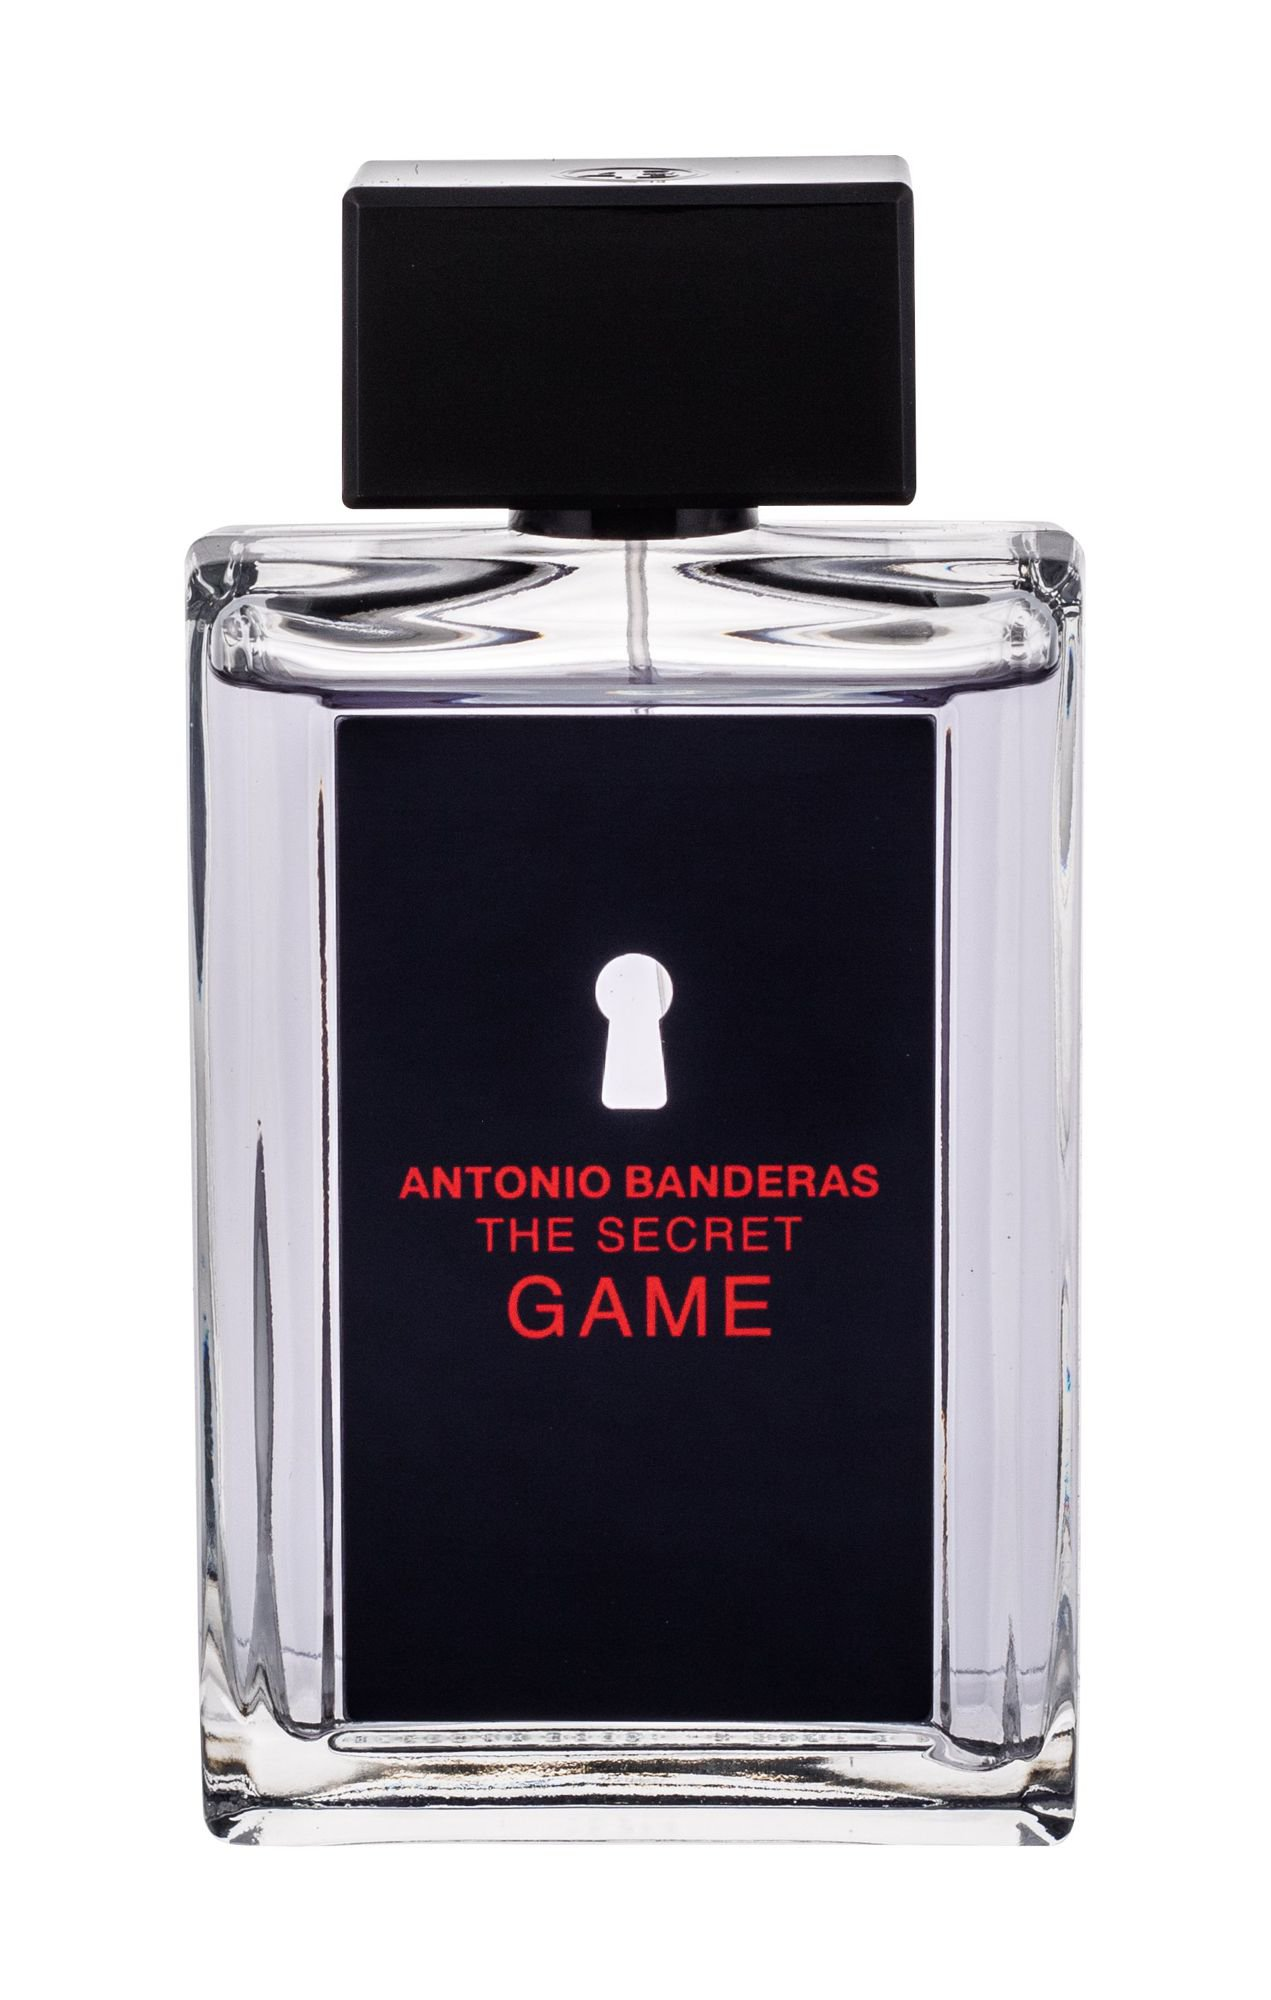 Antonio Banderas The Secret Game, edt 100ml